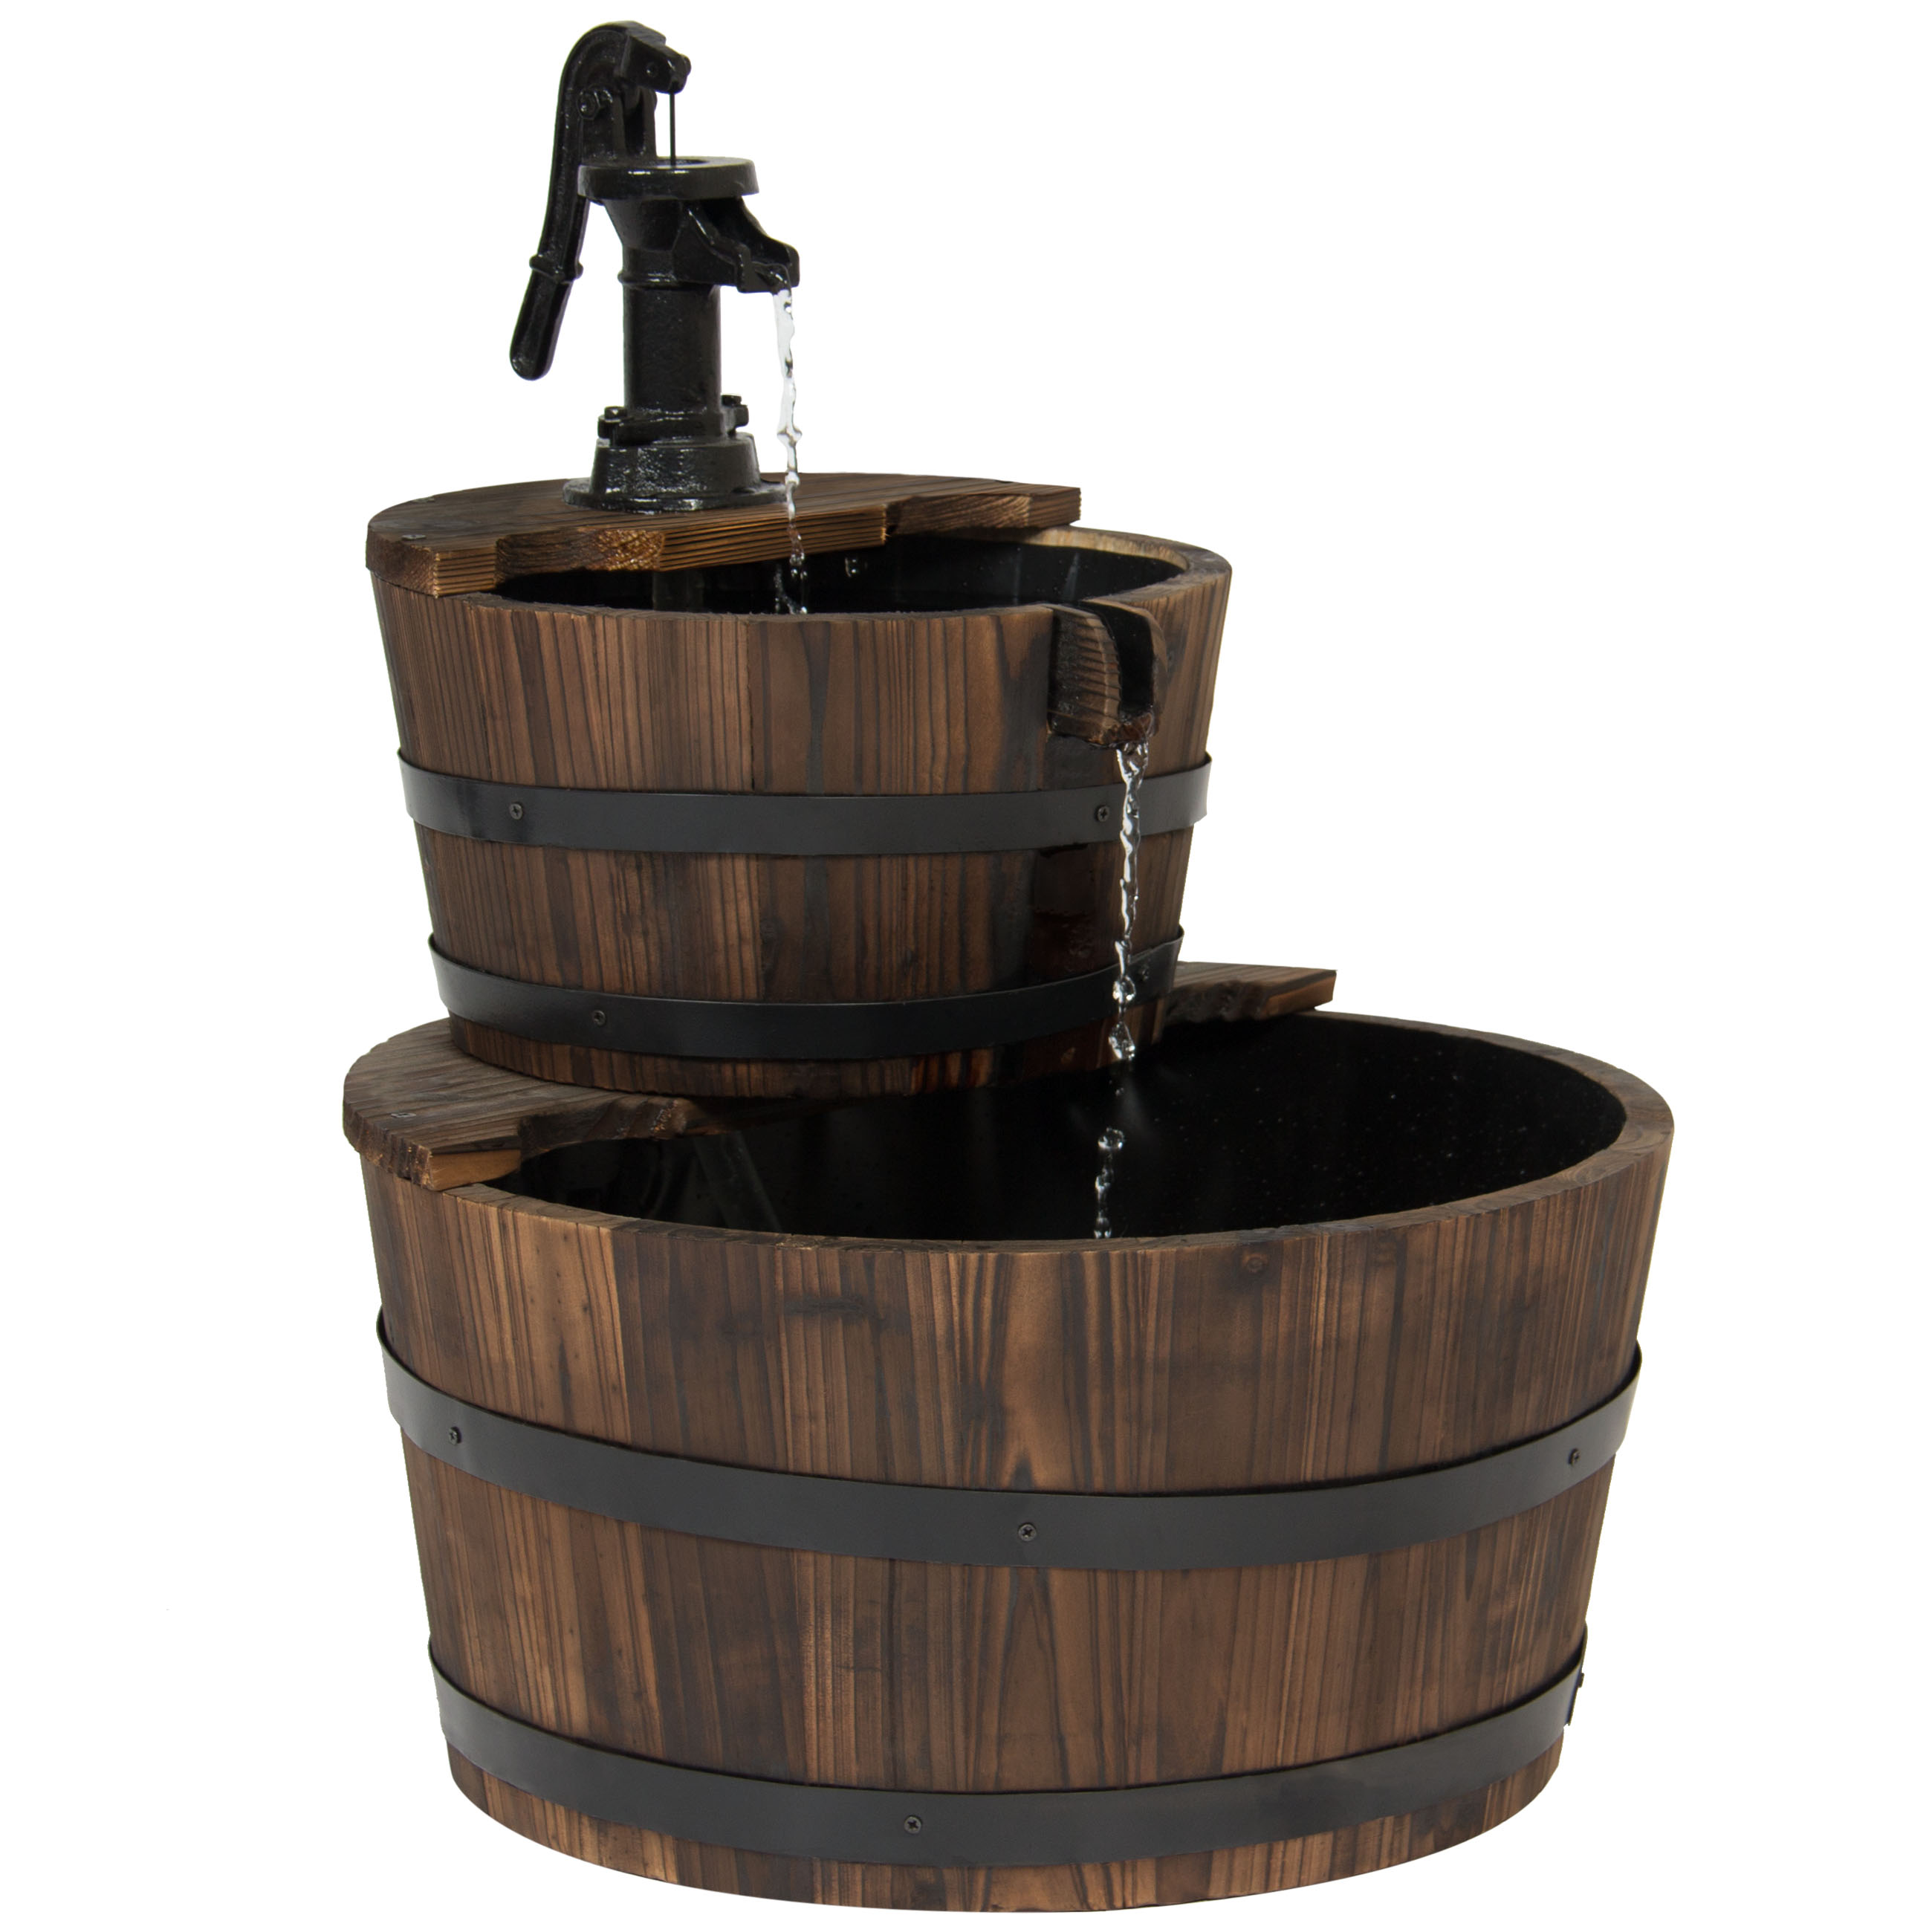 Best Choice Products Outdoor Garden Decor 2-Tier Wood Barrel Water Fountain W  Pump Brown by